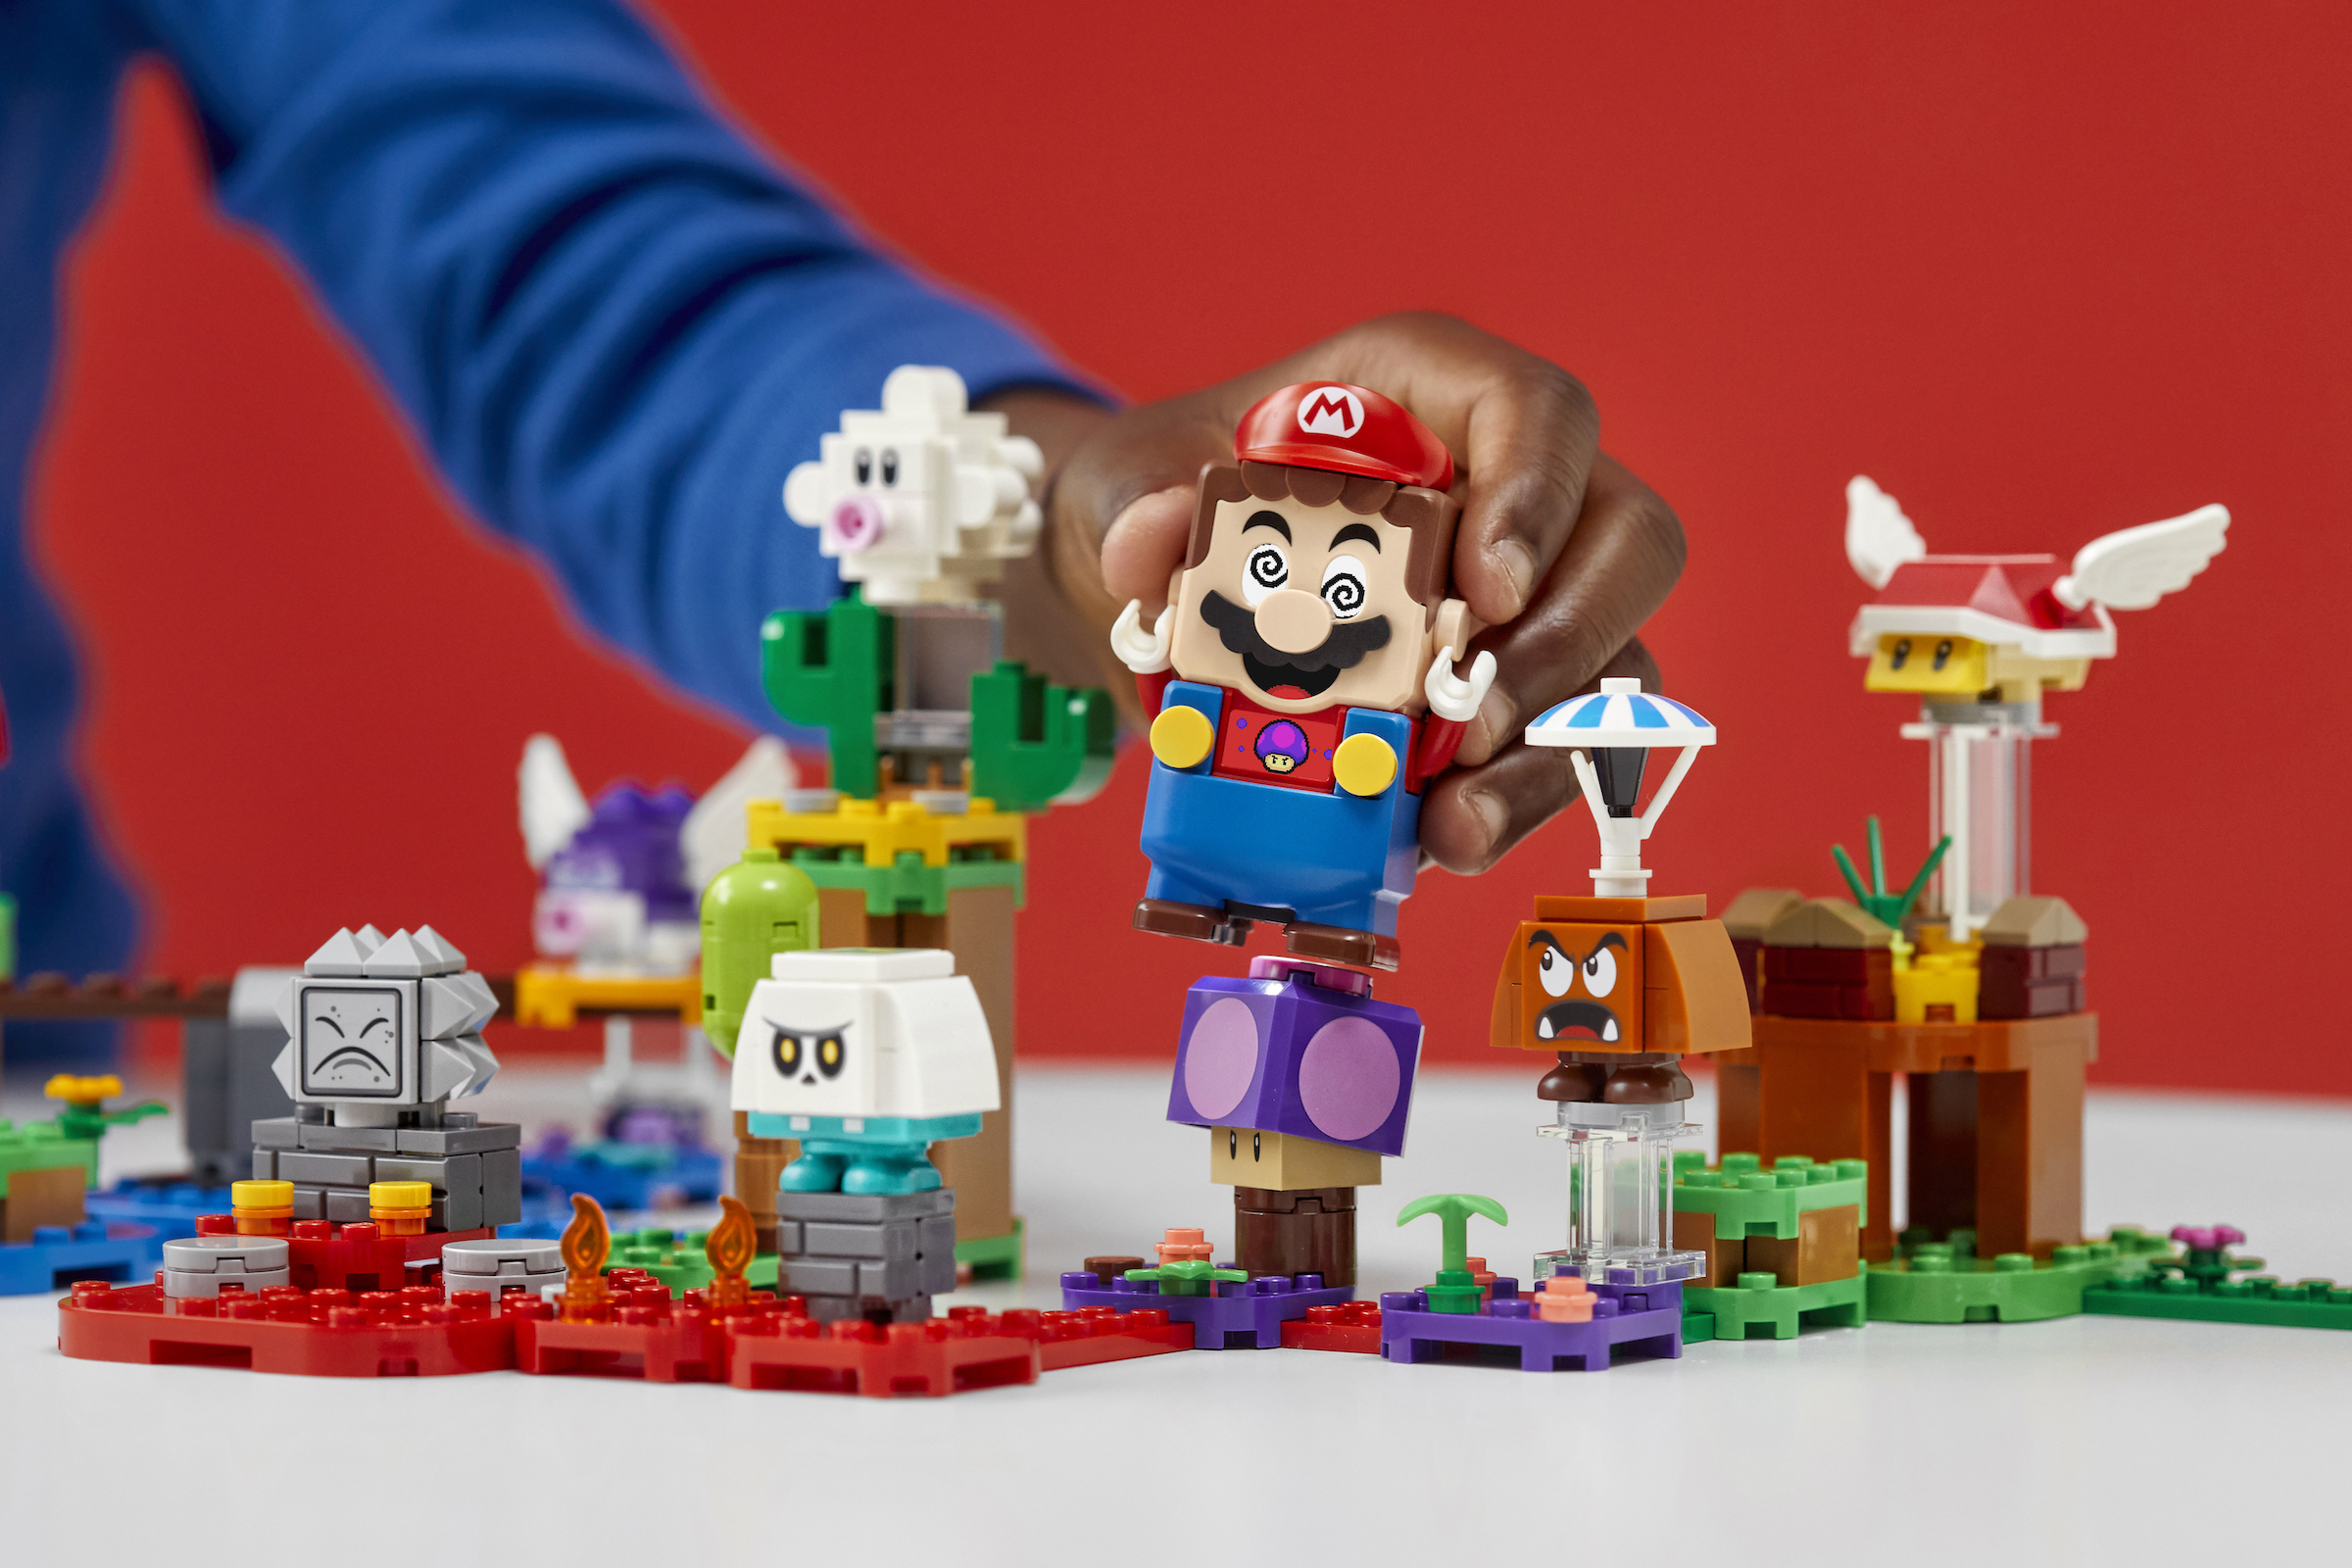 Lego expands its Super Mario world with customization tools, new Mario power-ups, and more characters 3